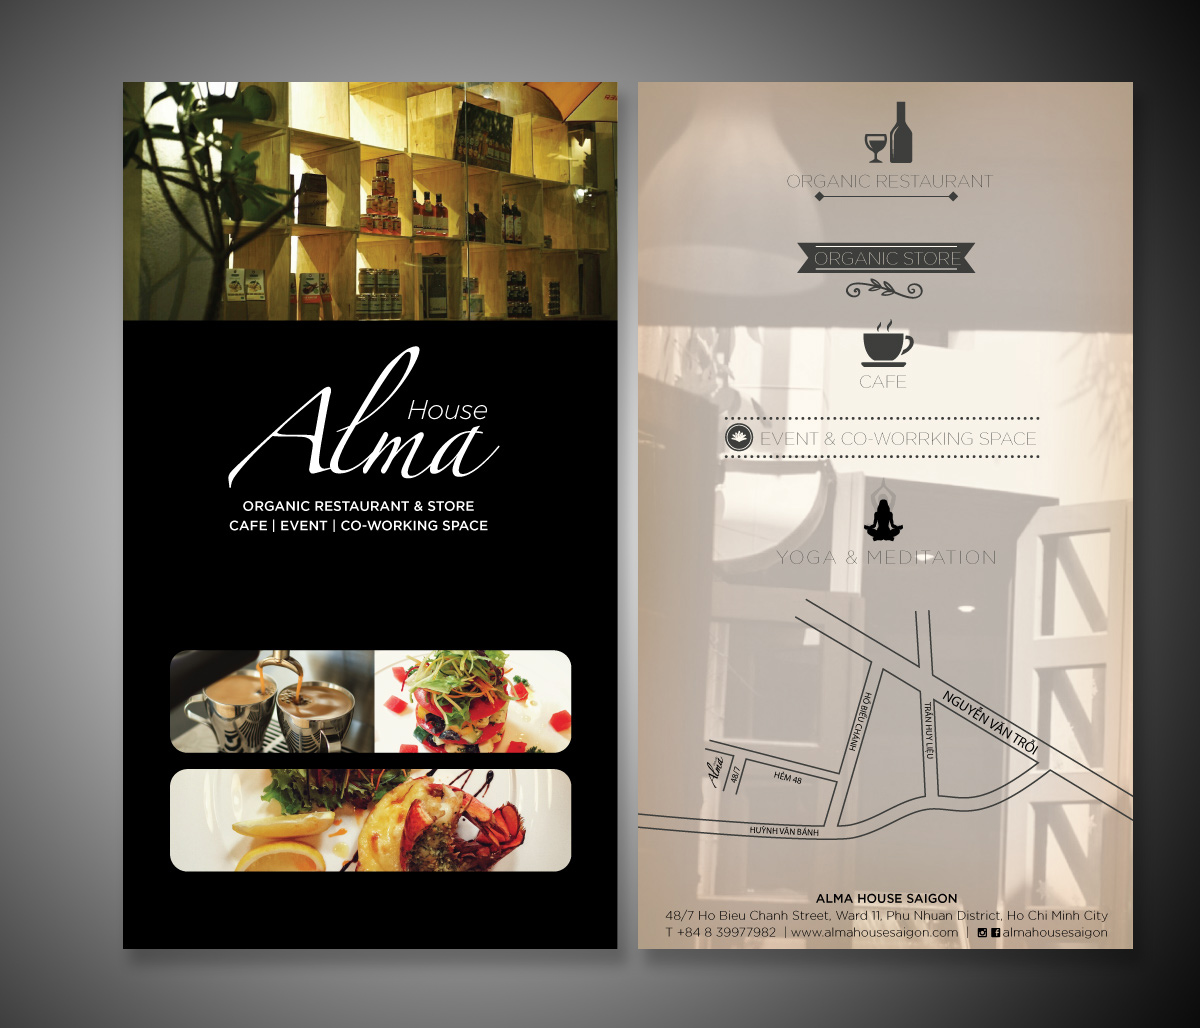 Image result for alma house saigon